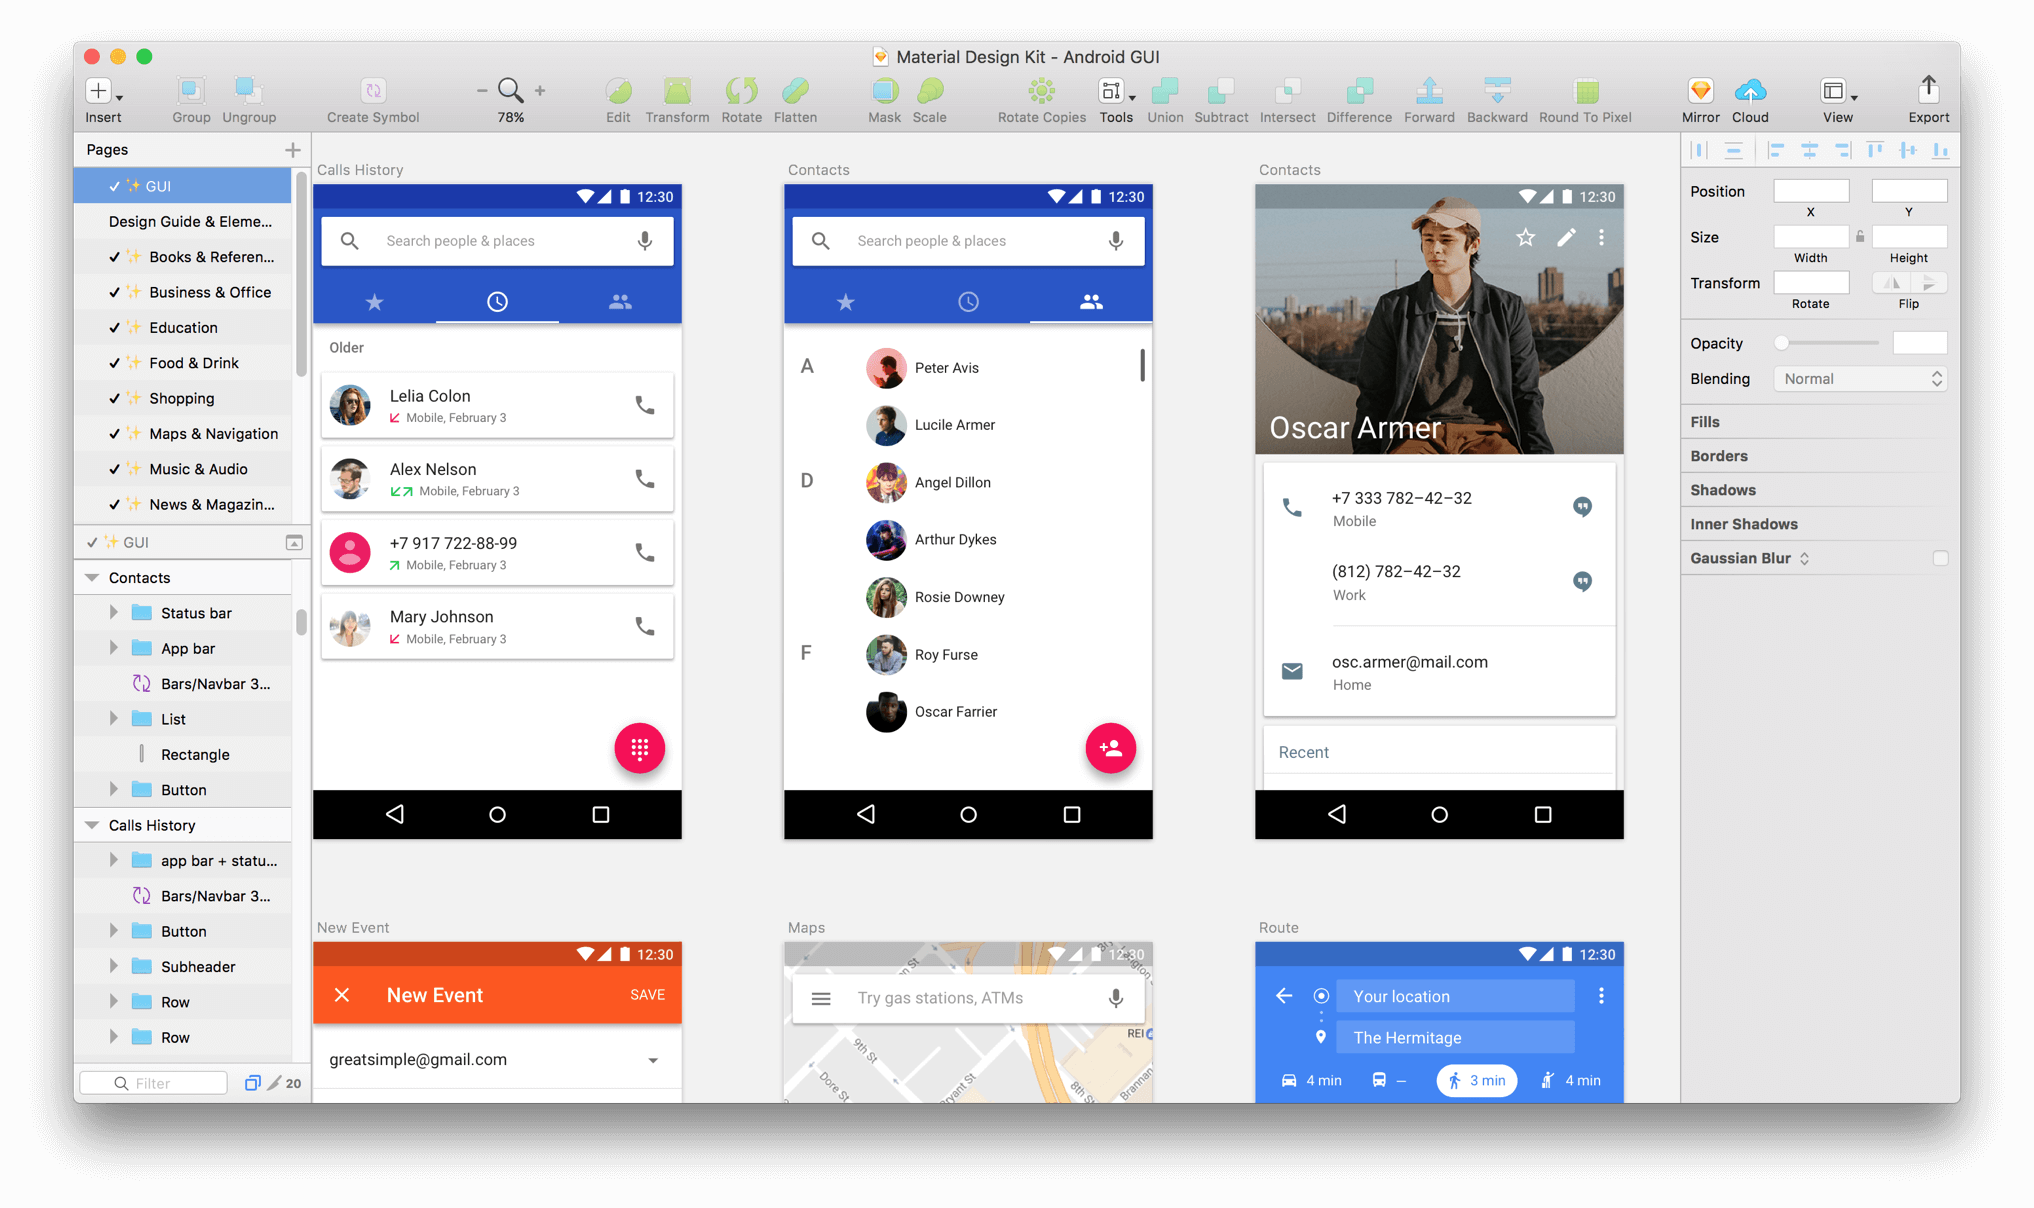 Android GUI - Material Design Kit